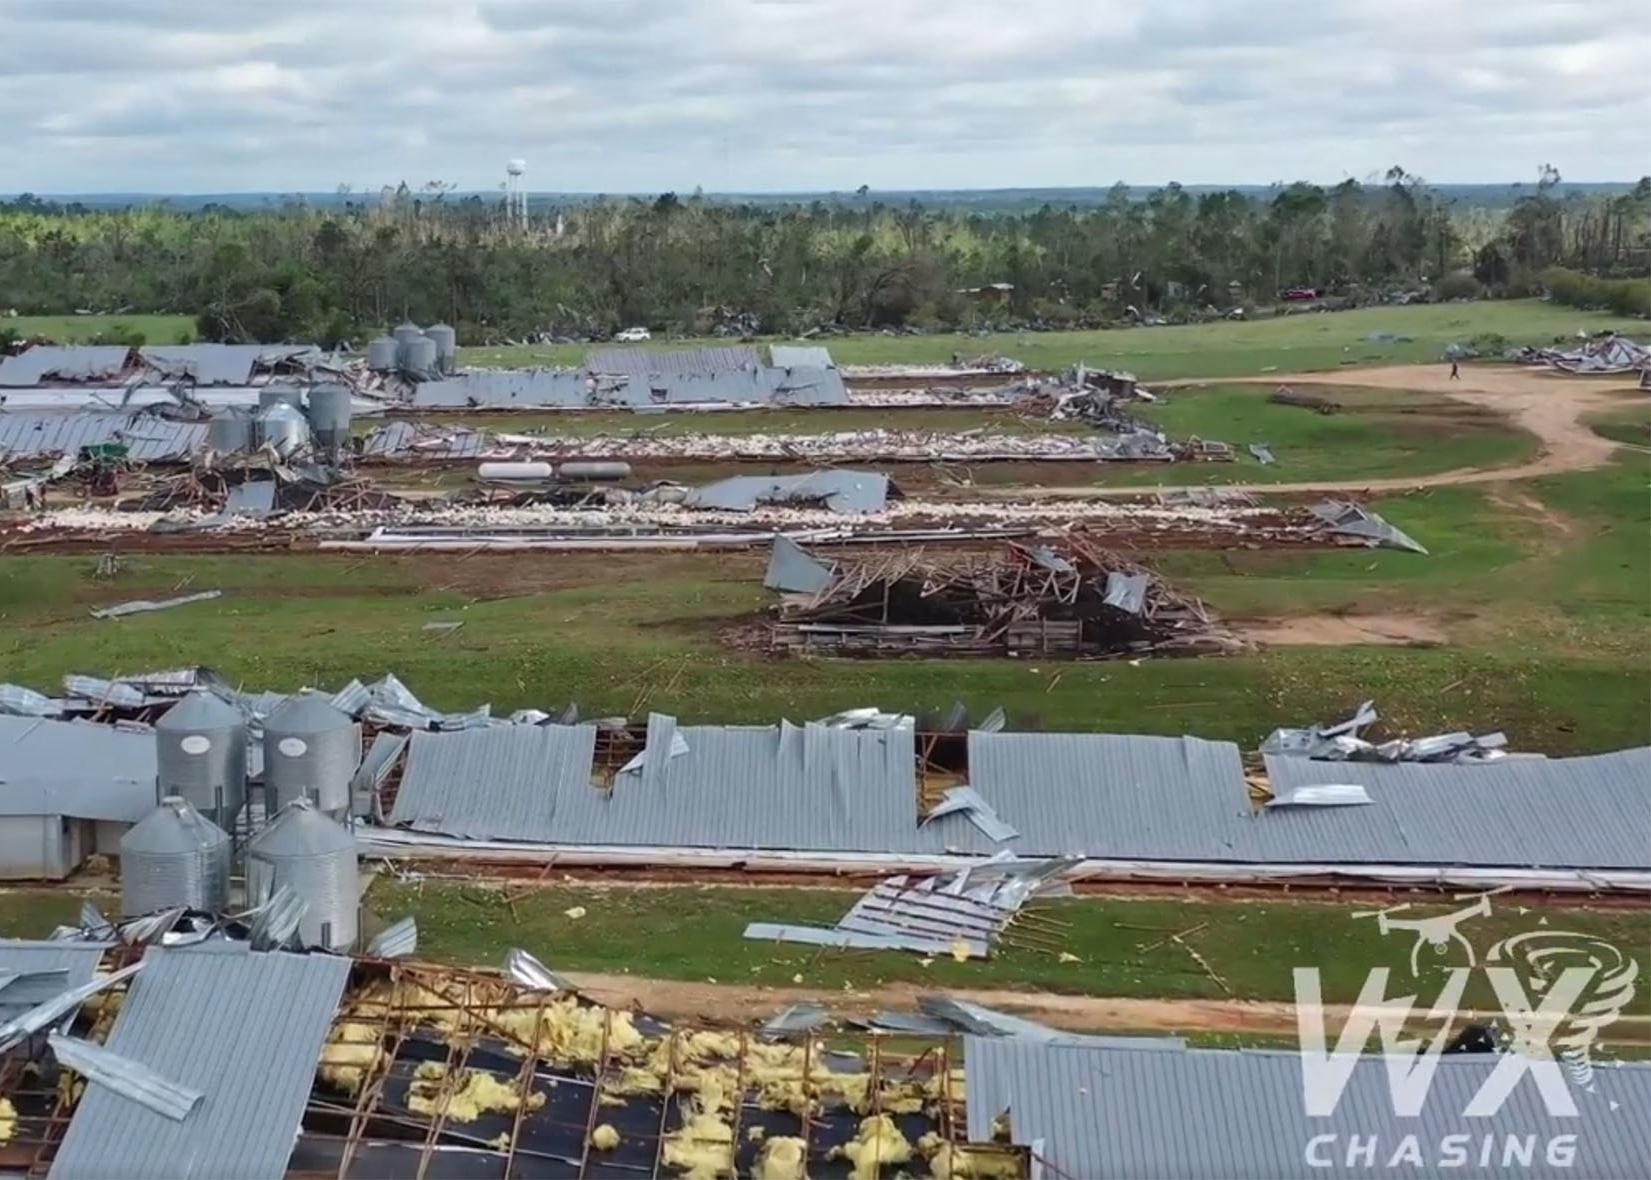 Metal roofs of poultry houses lie on the ground in rows amid twisted metal and debris.